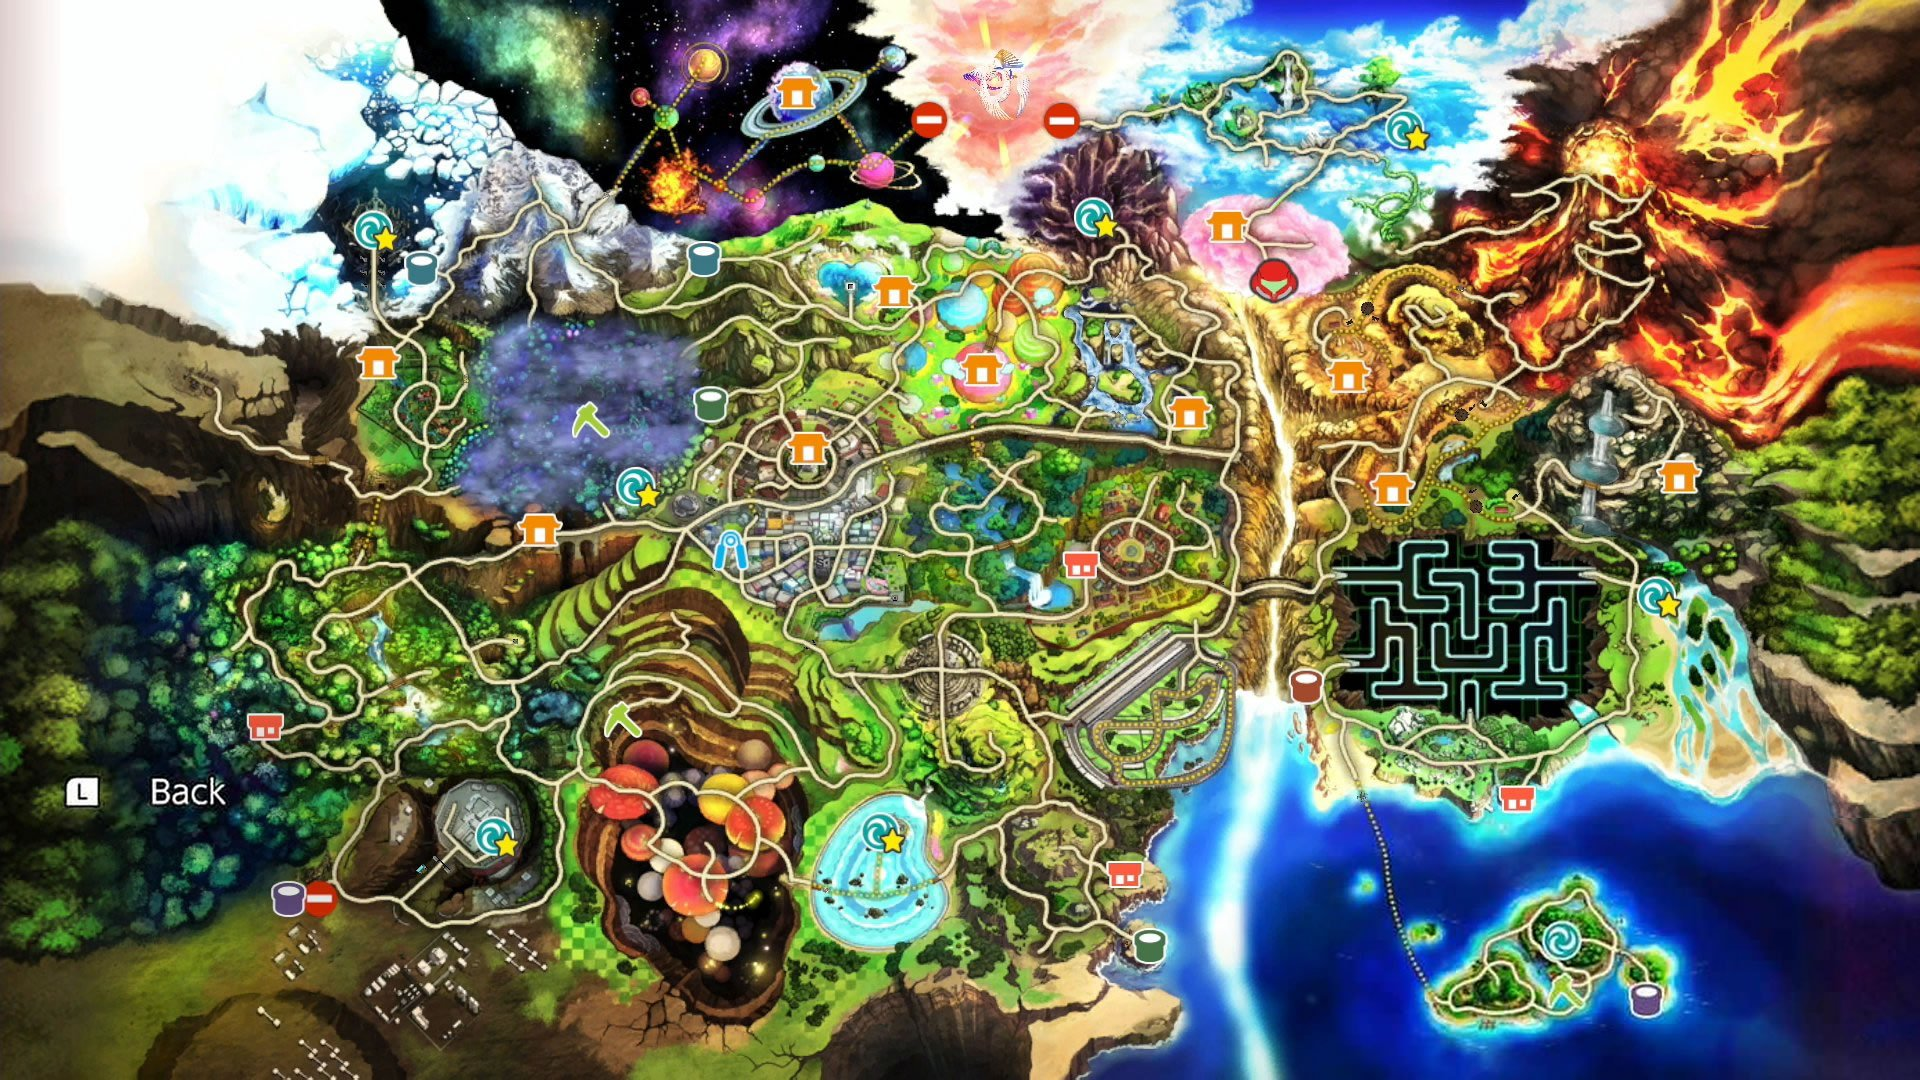 Super Smash Bros Ultimate adventure mode map - World of Light